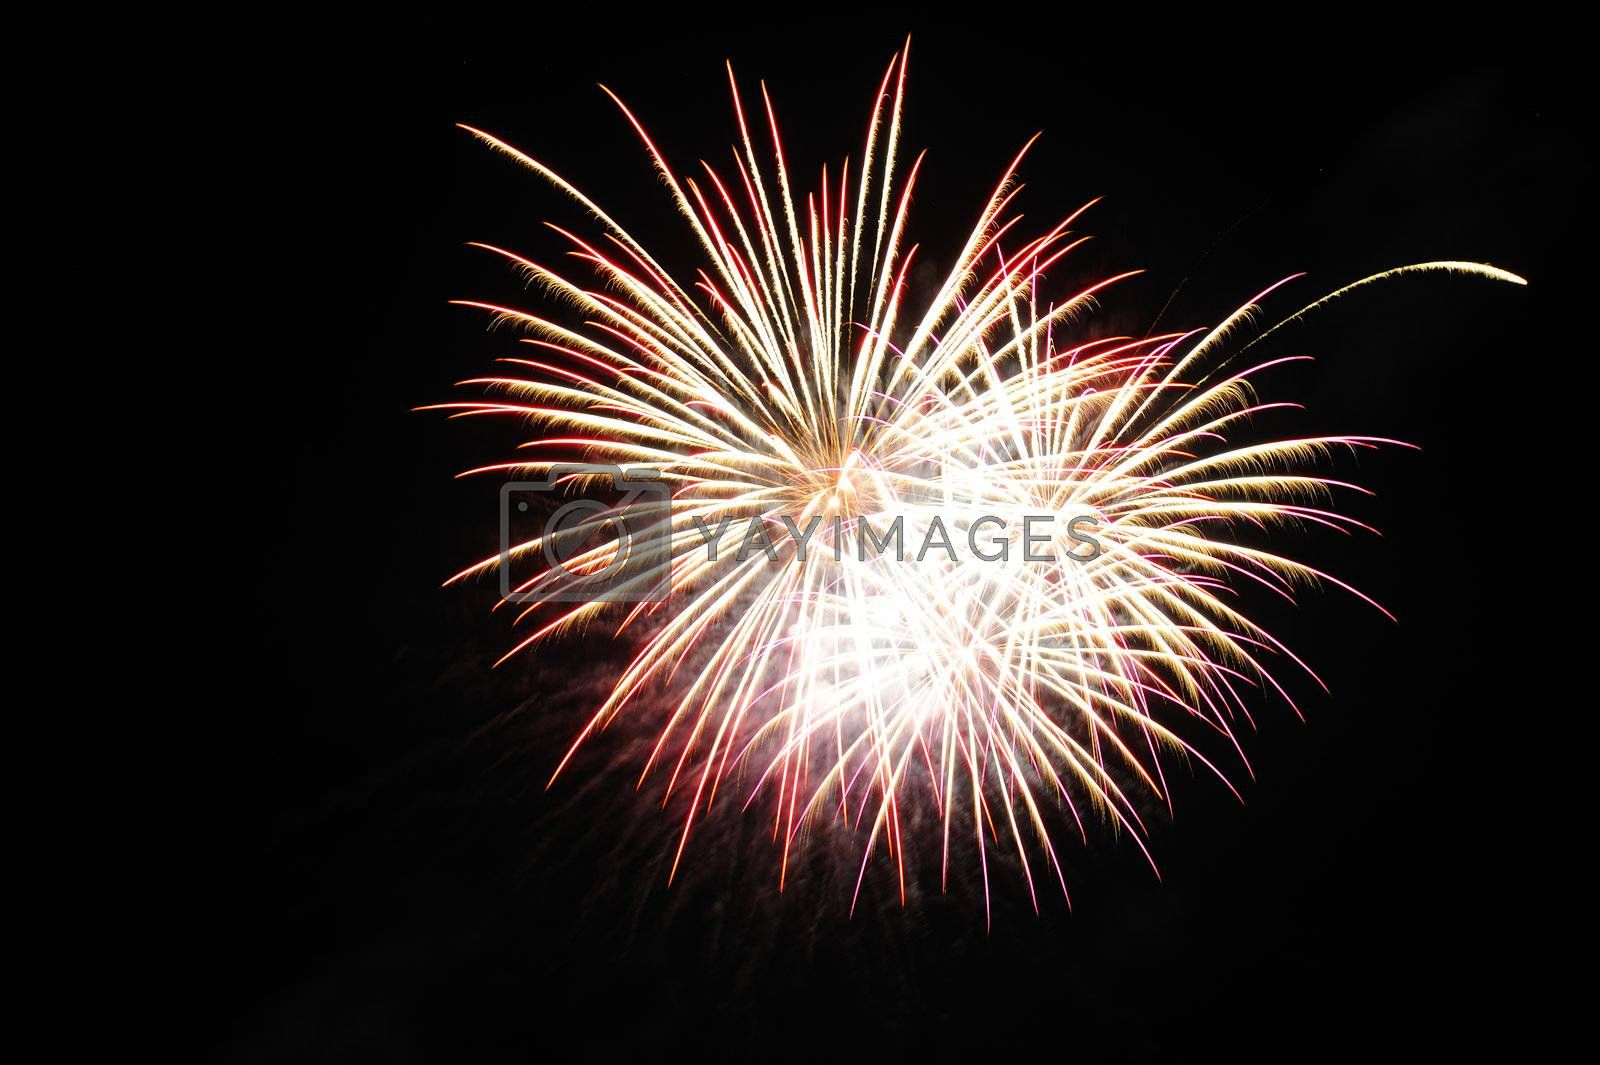 Firework burst in the night sky. Space for text in the sky.